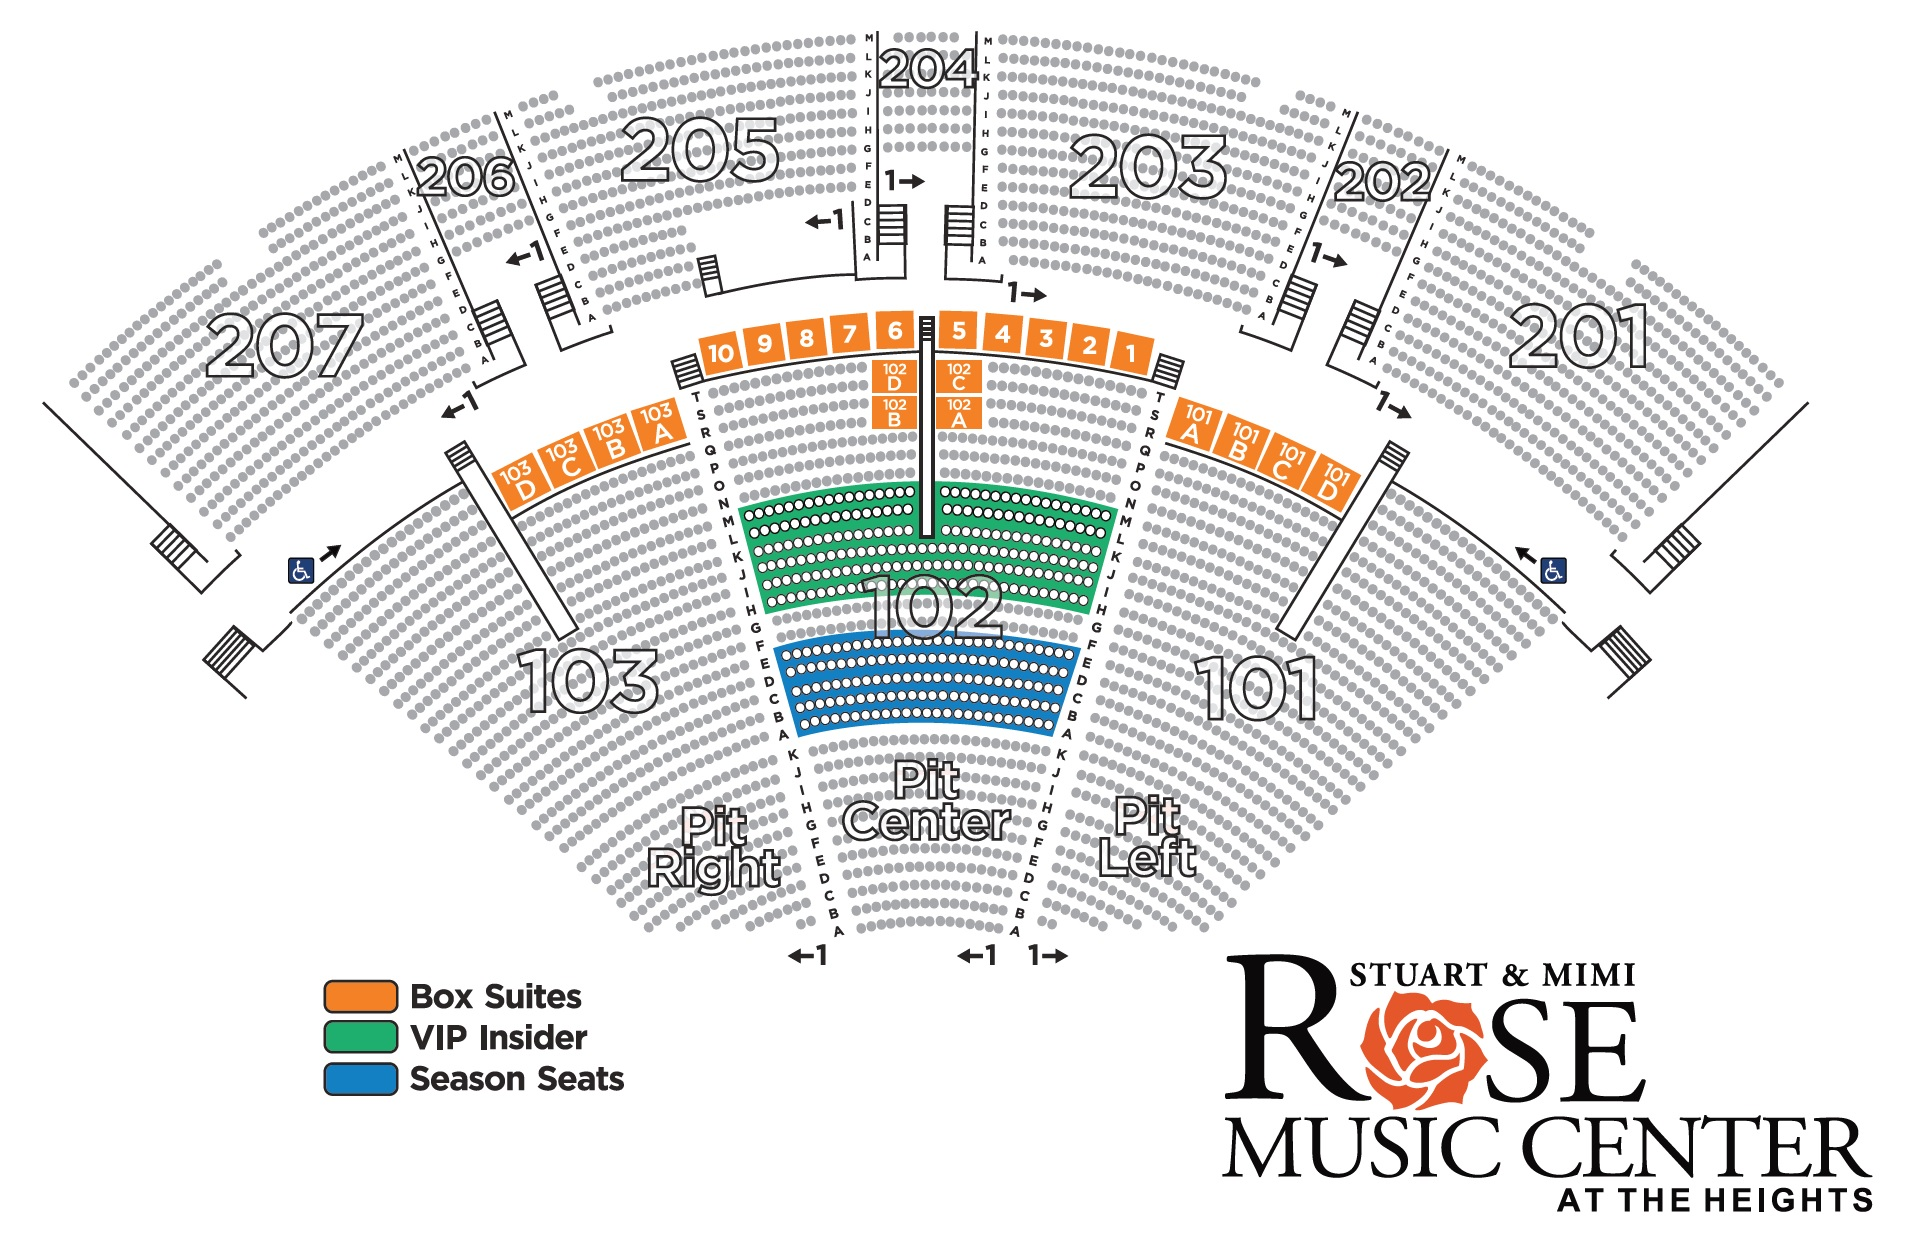 season ticket seating map rose music center at the heights. Black Bedroom Furniture Sets. Home Design Ideas